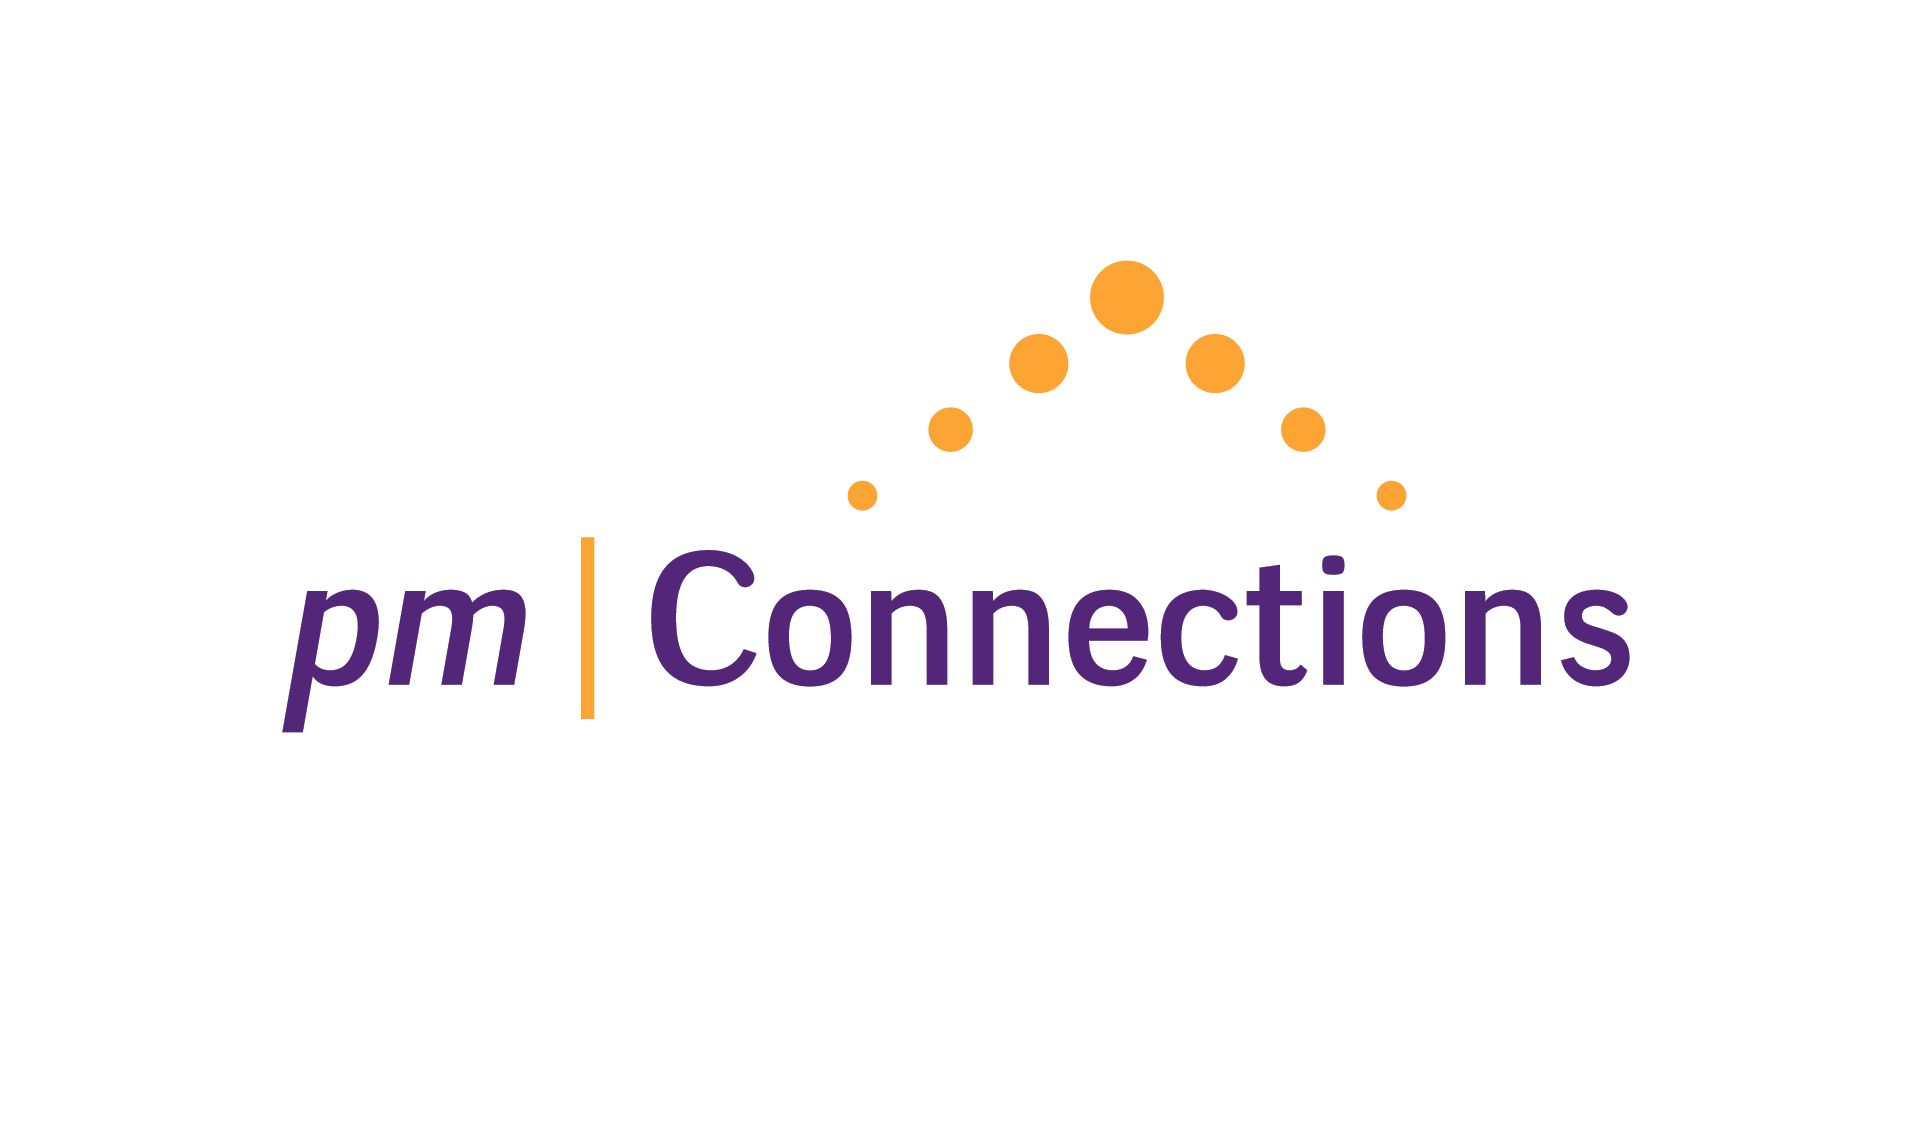 PM Connections